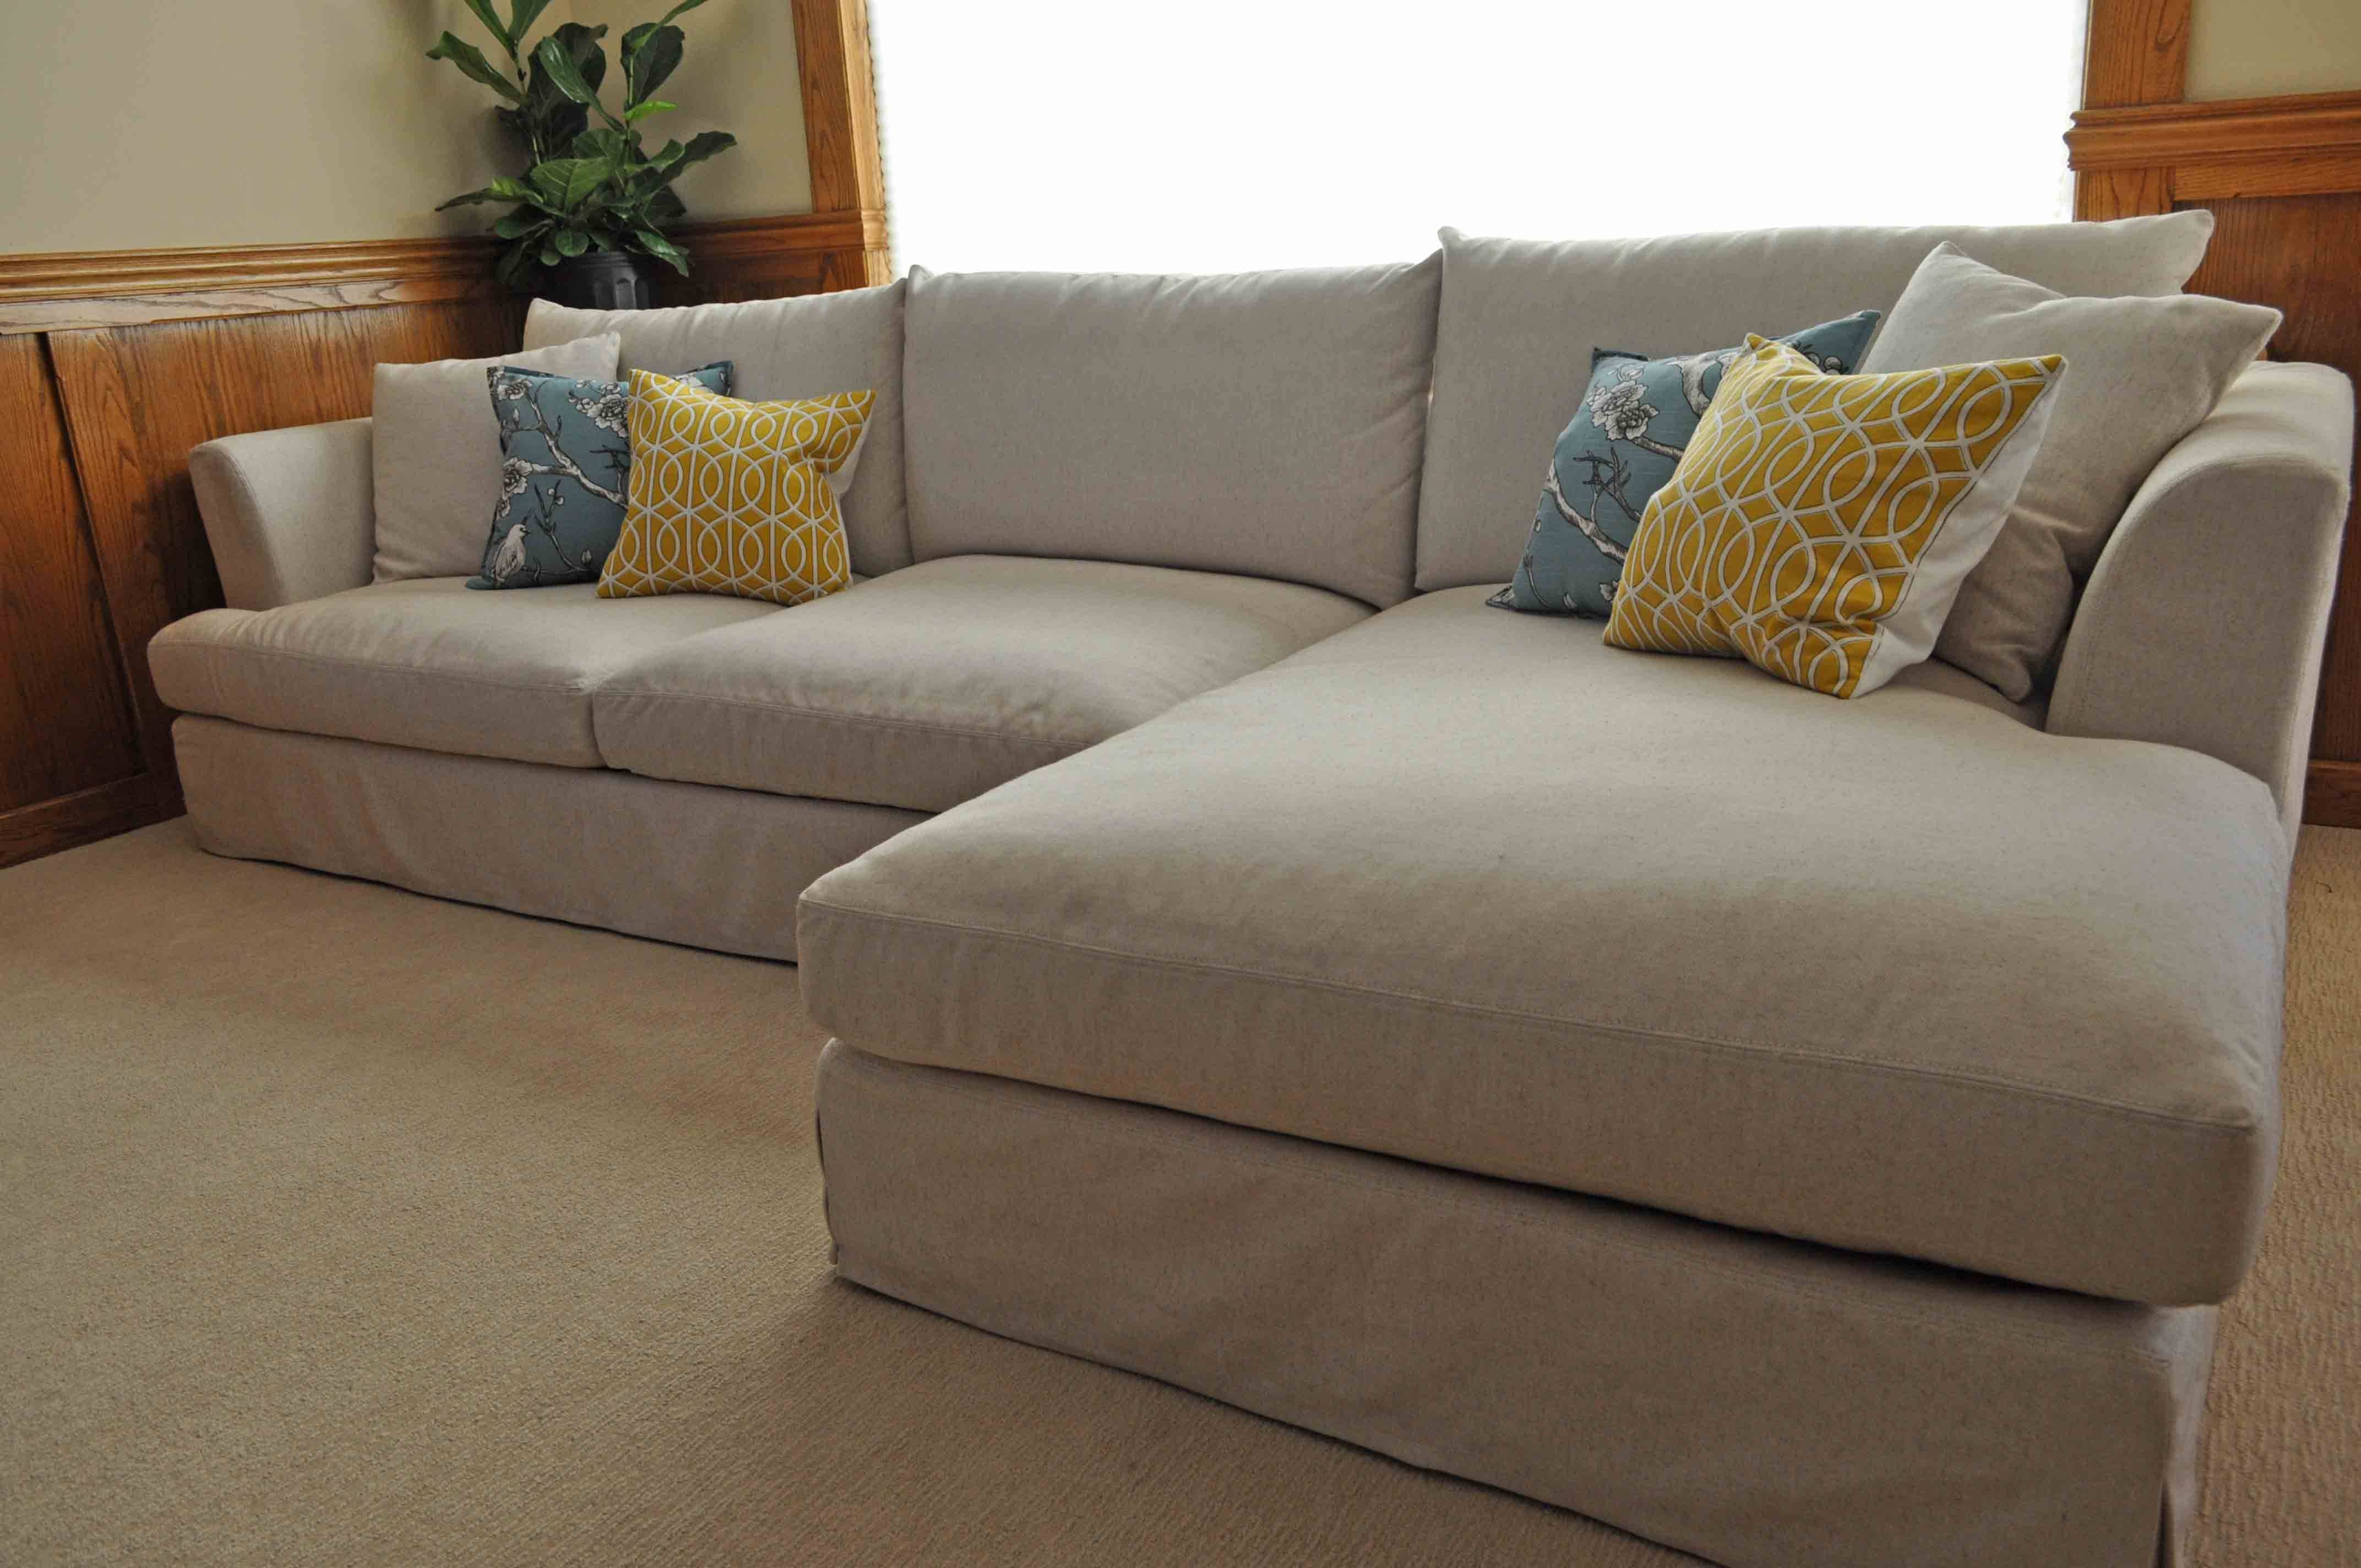 Best Sectional Sofas | Roselawnlutheran inside Austin Sectional Sofa (Image 5 of 30)